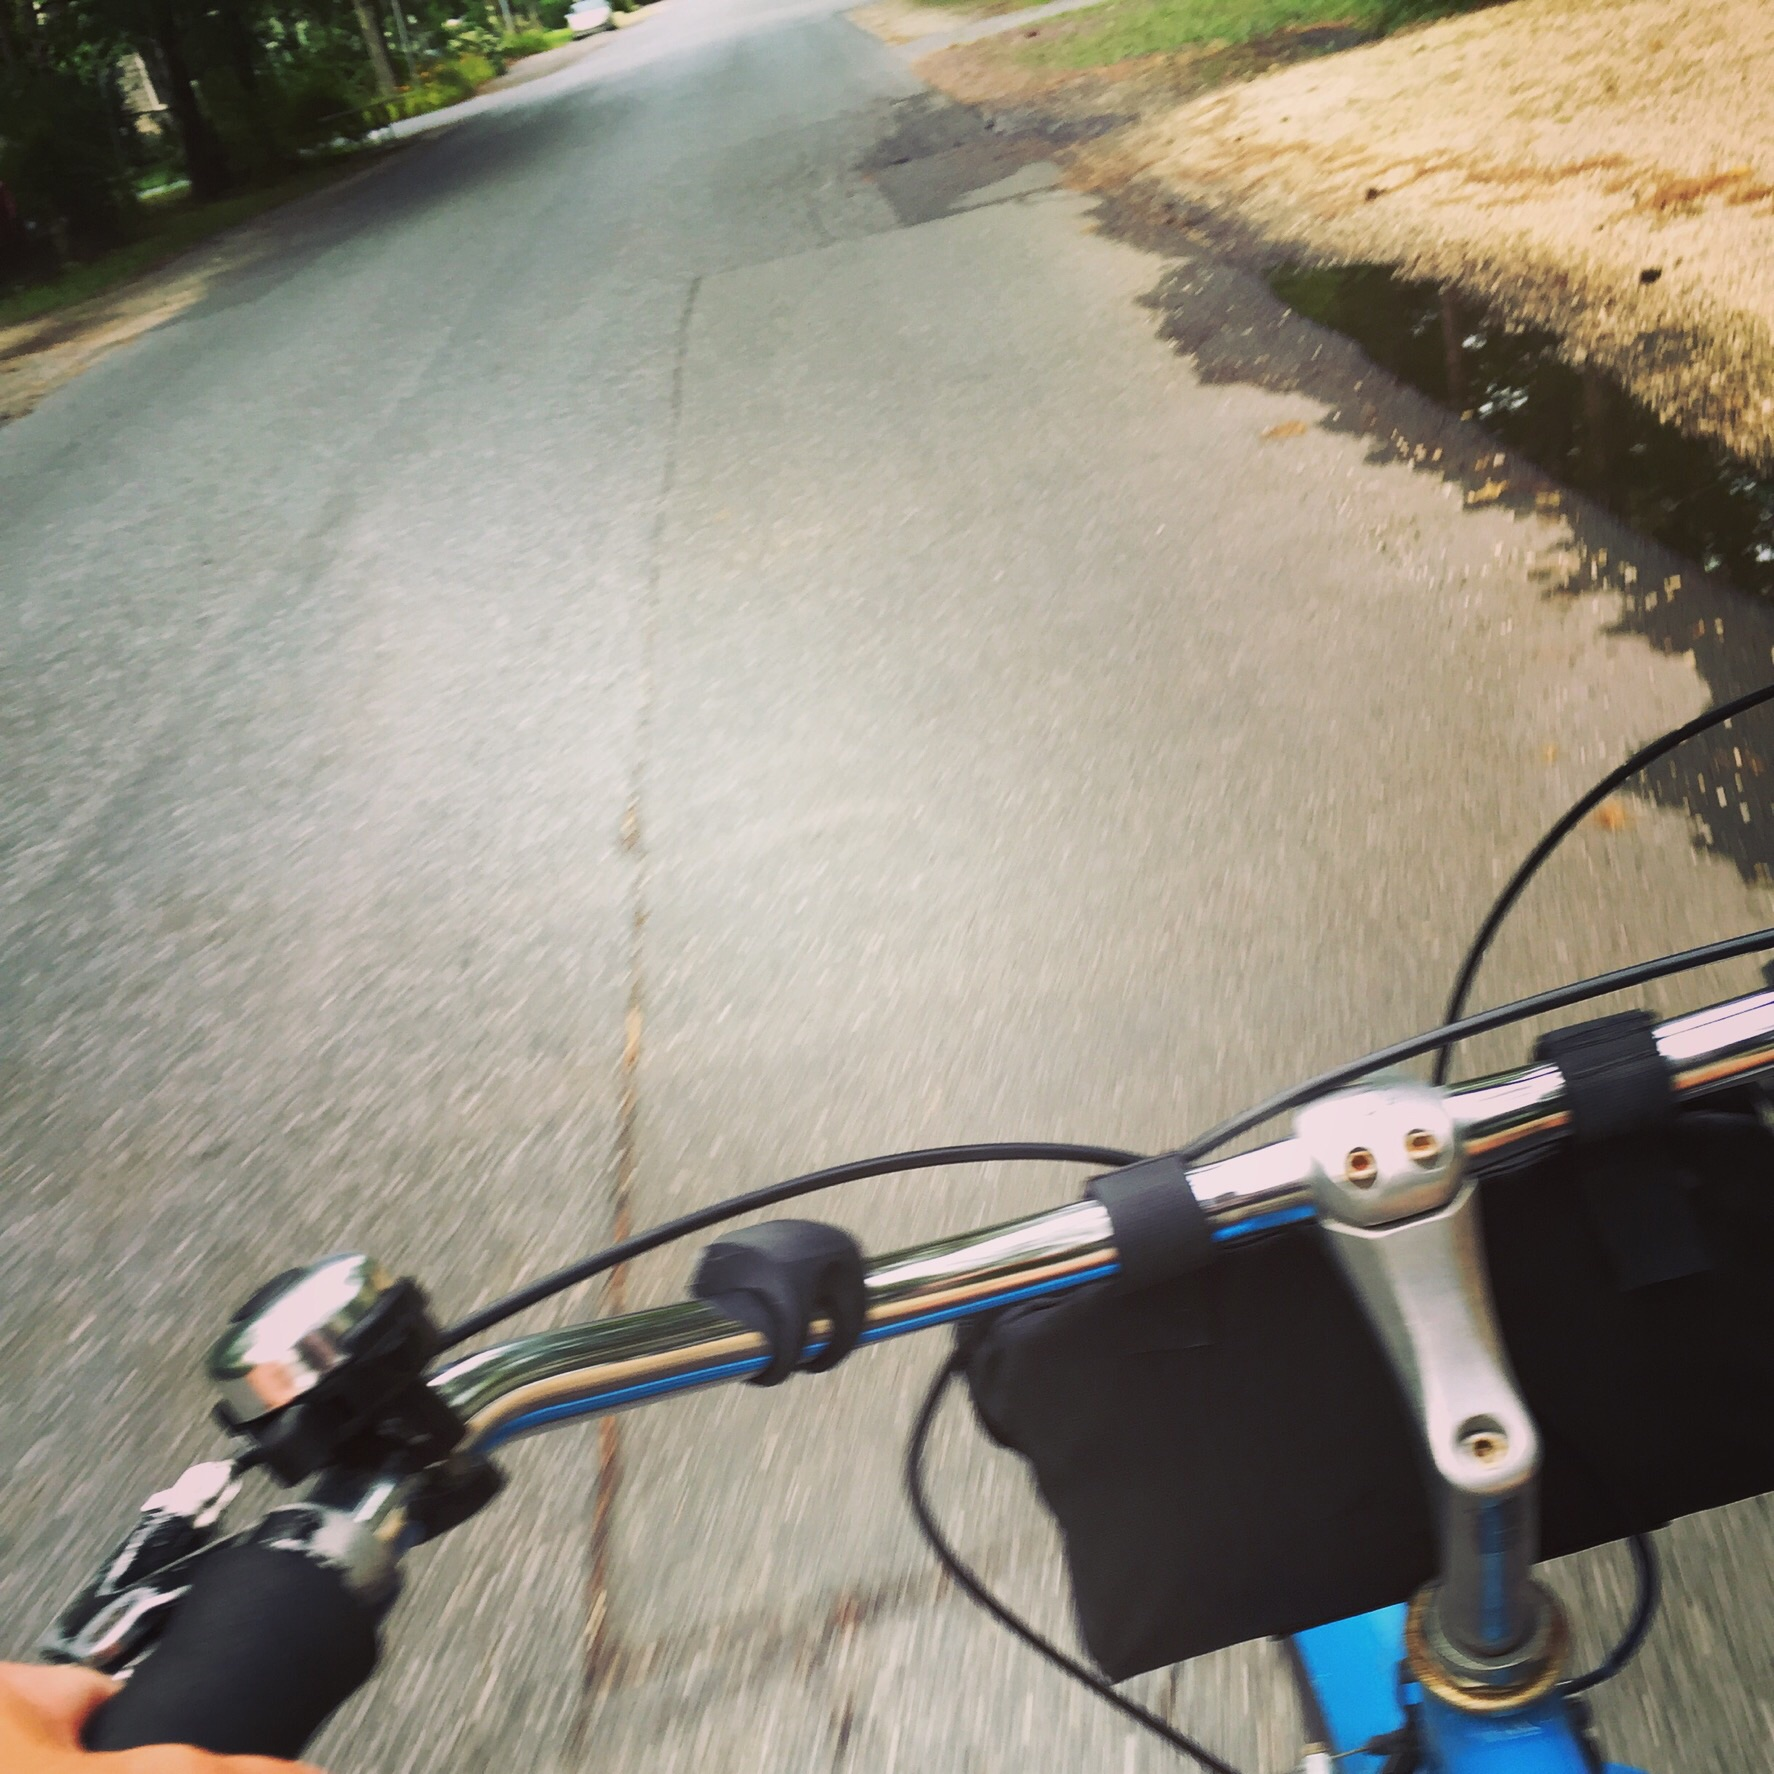 We've traveled down Henlopen Avenue more times than we can count via the tandem.